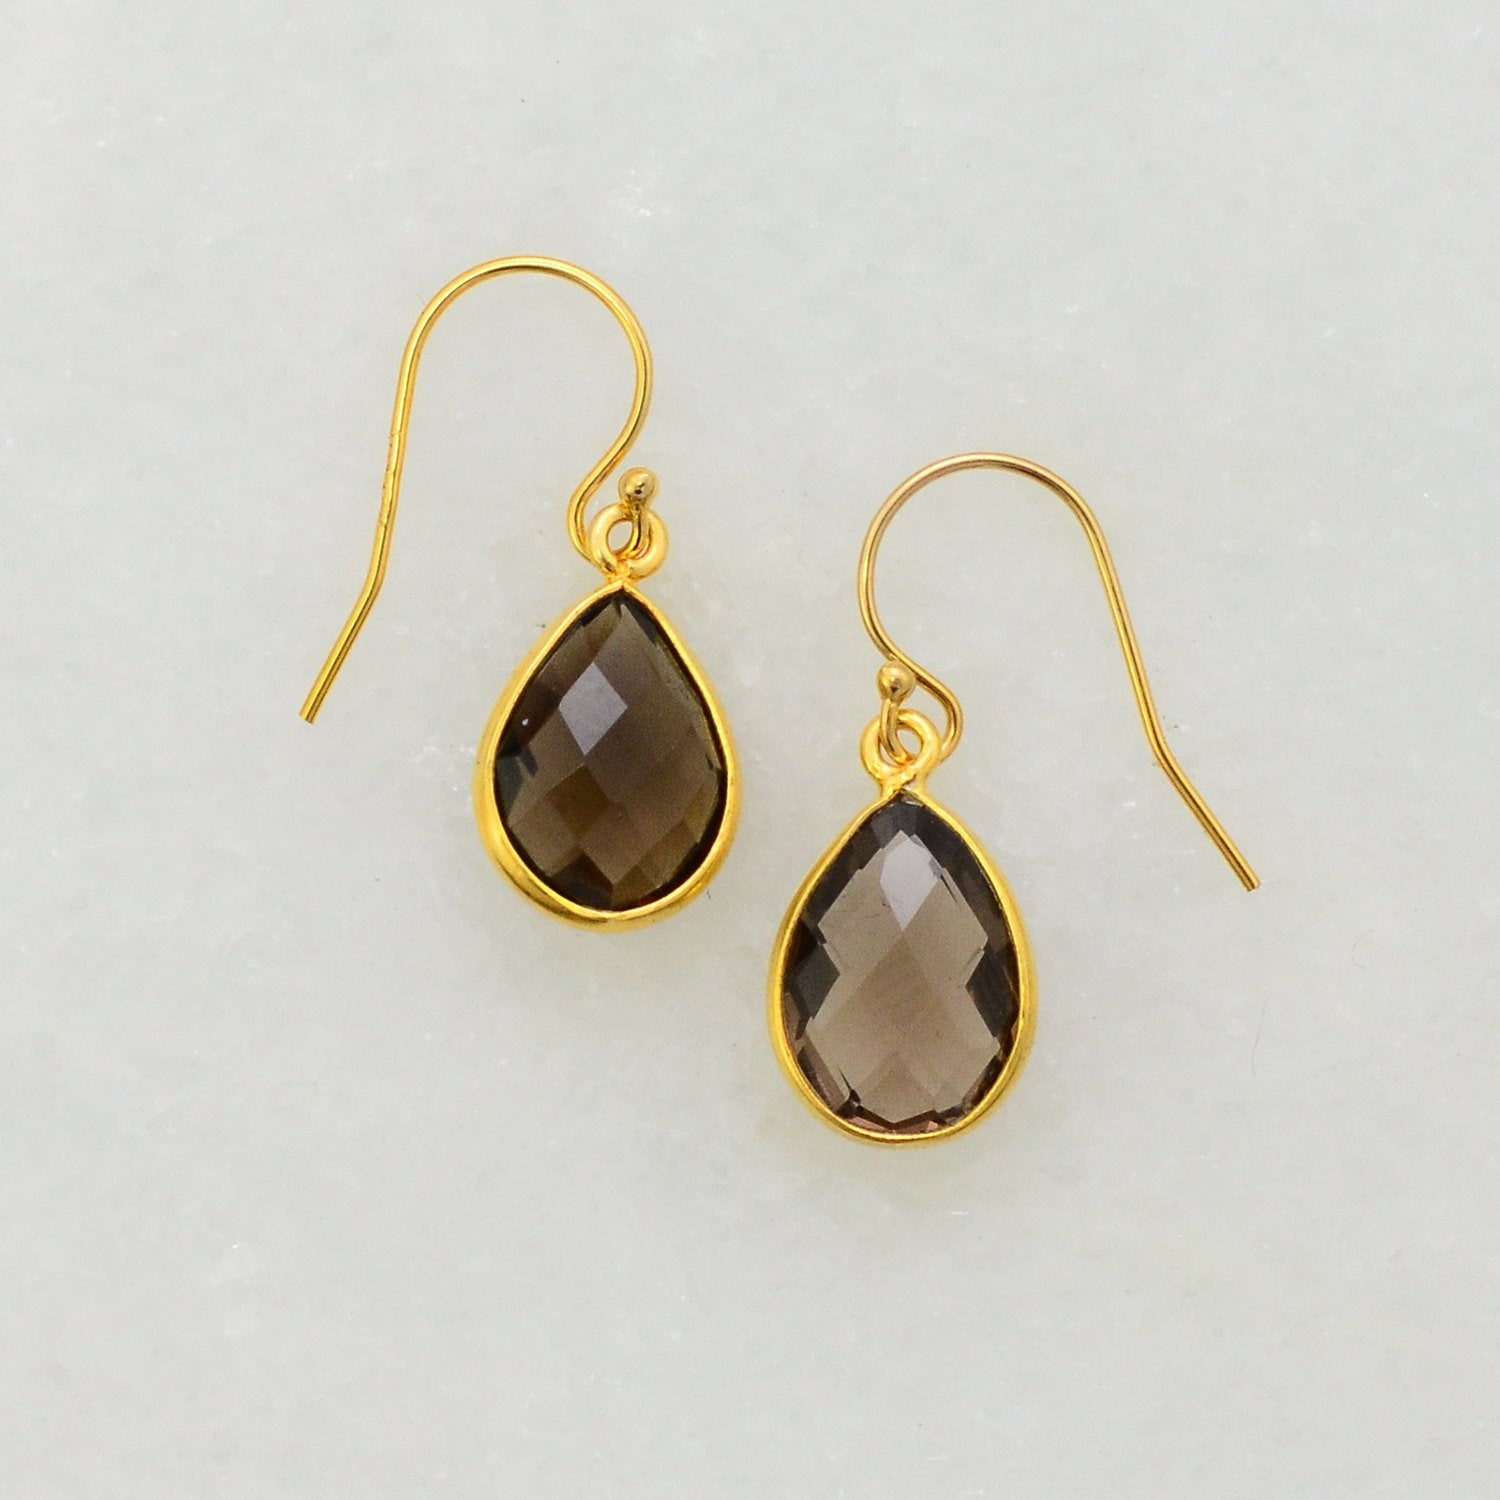 Smoky Quartz Earring - Smoky Silver Earring -Bridesmaid Earring - Gemstone Earring - Dangle Earring - Bezel Set earring - Bezel Drop Earring